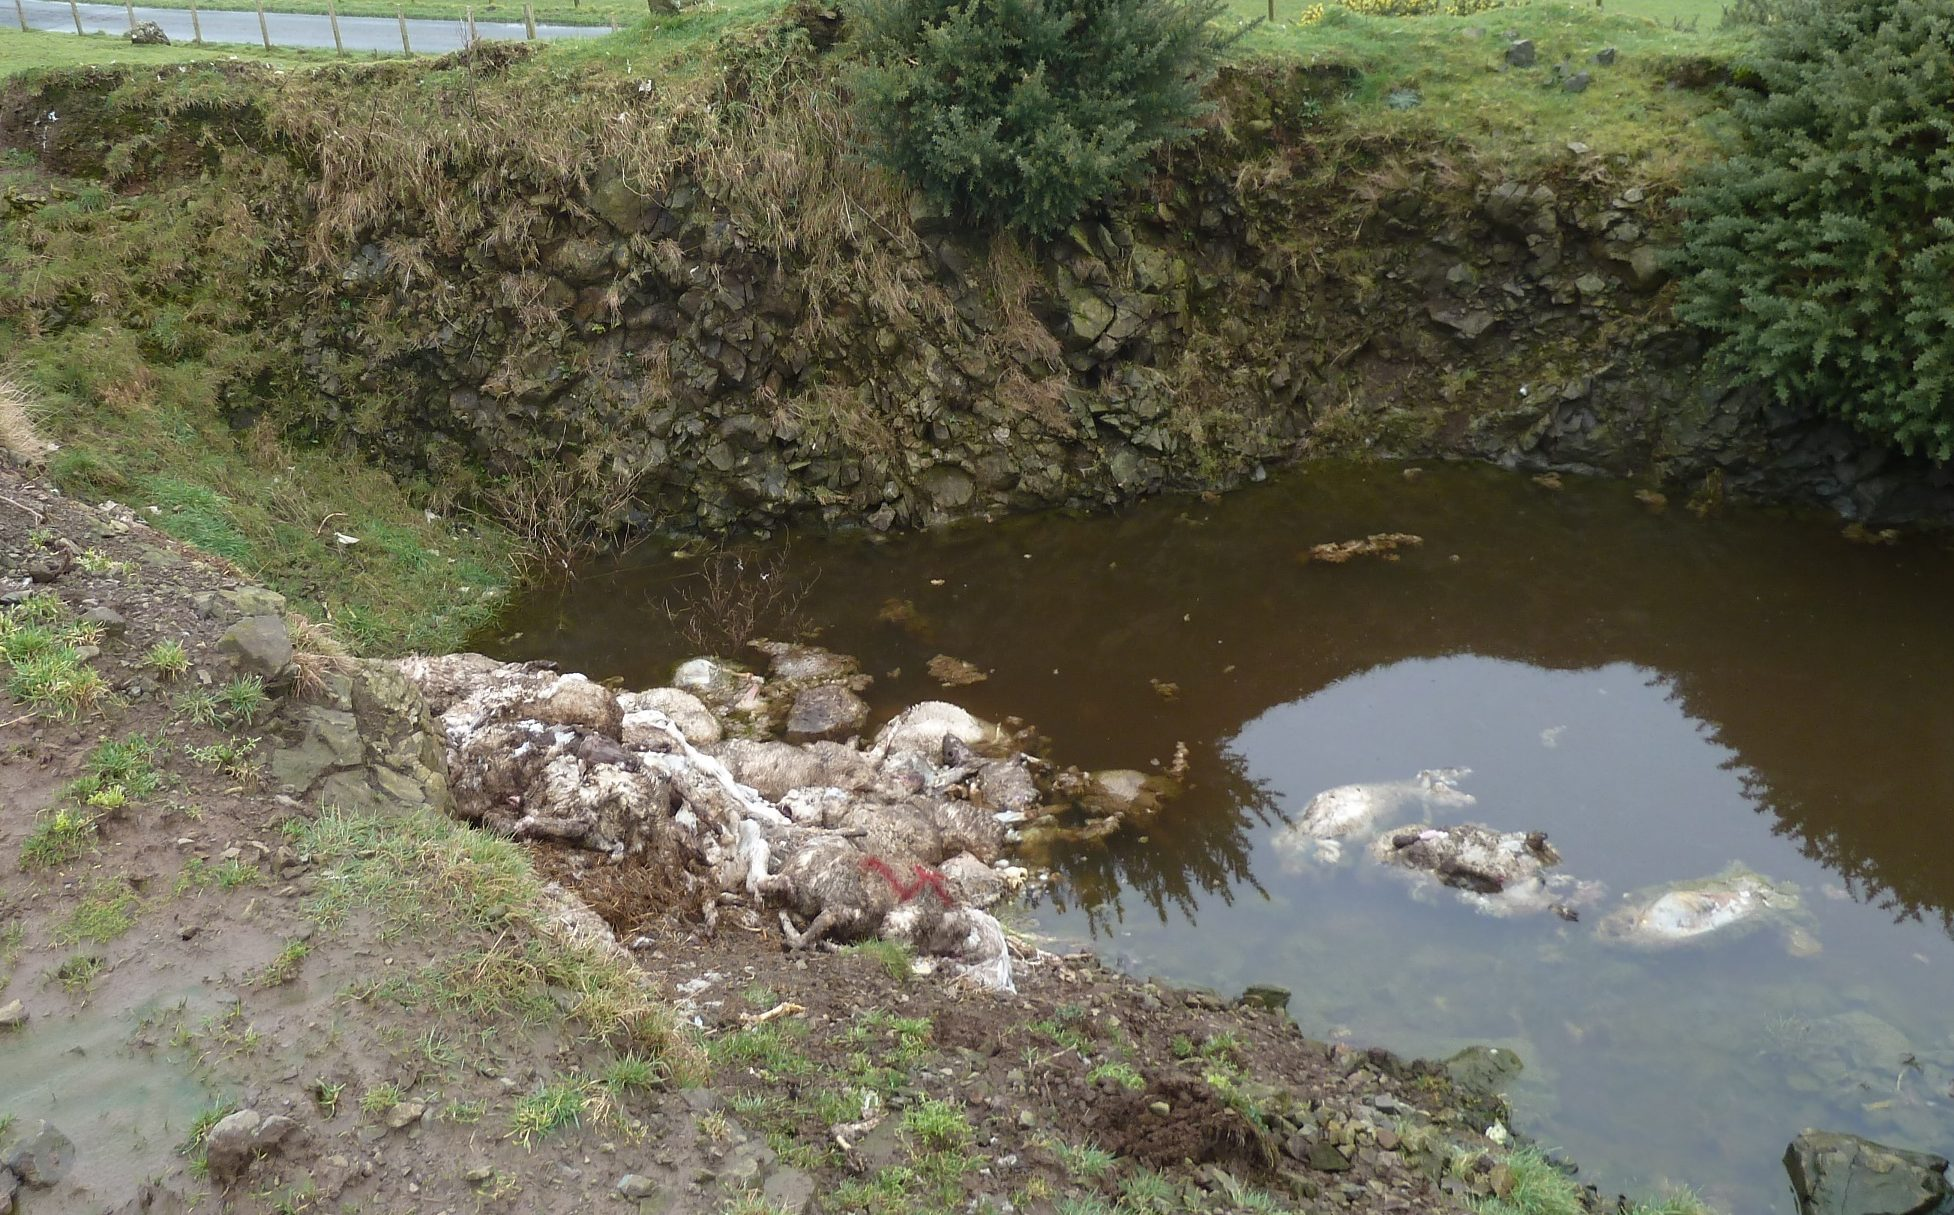 Sheep carcasses were found dumped in an open pit.